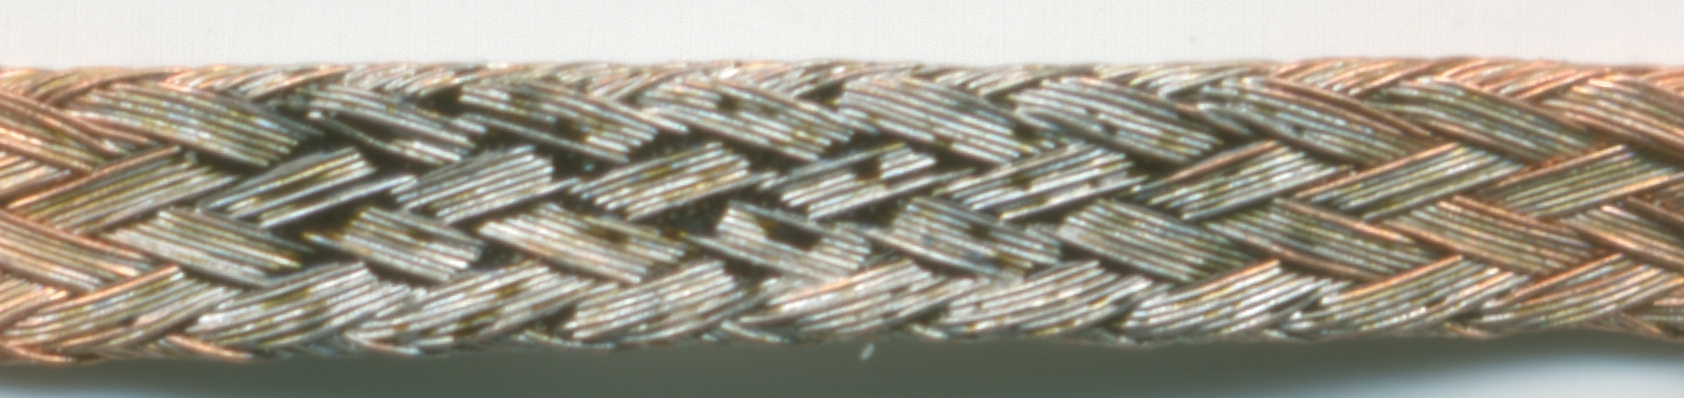 solder wick-close up-solder impurities pnr°0112.jpg